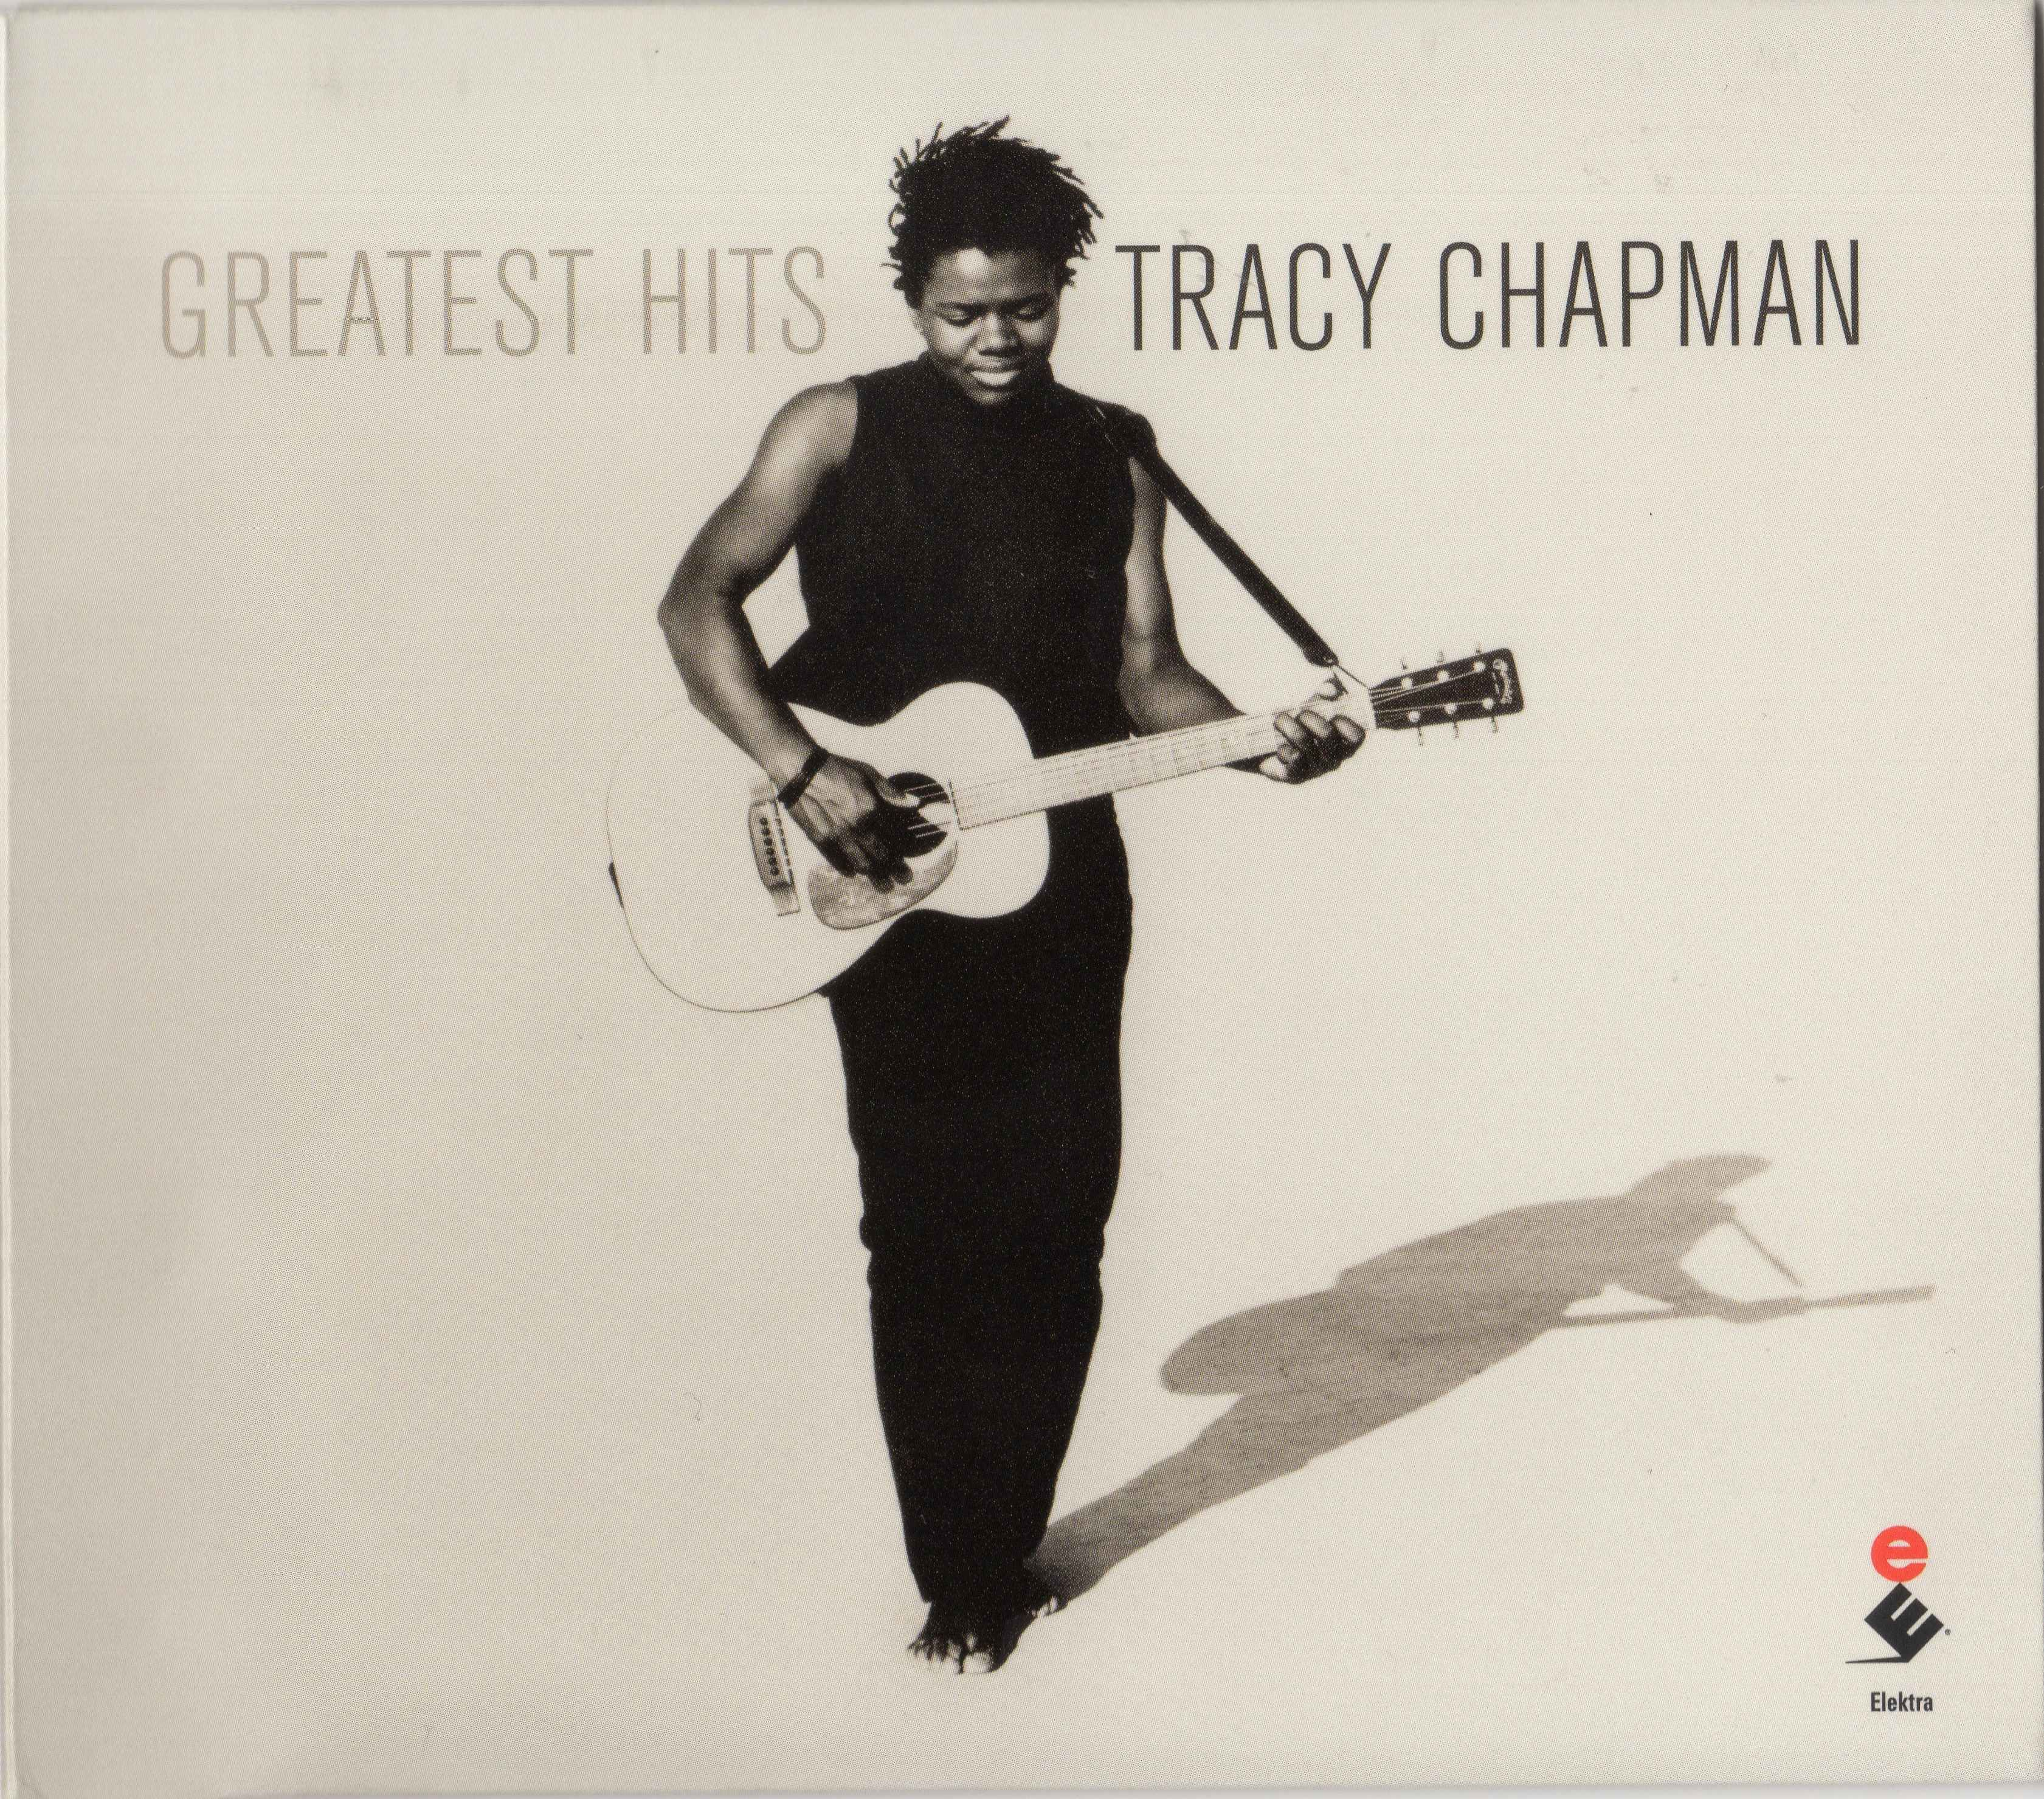 Tracy Chapman - Greatest Hits album cover